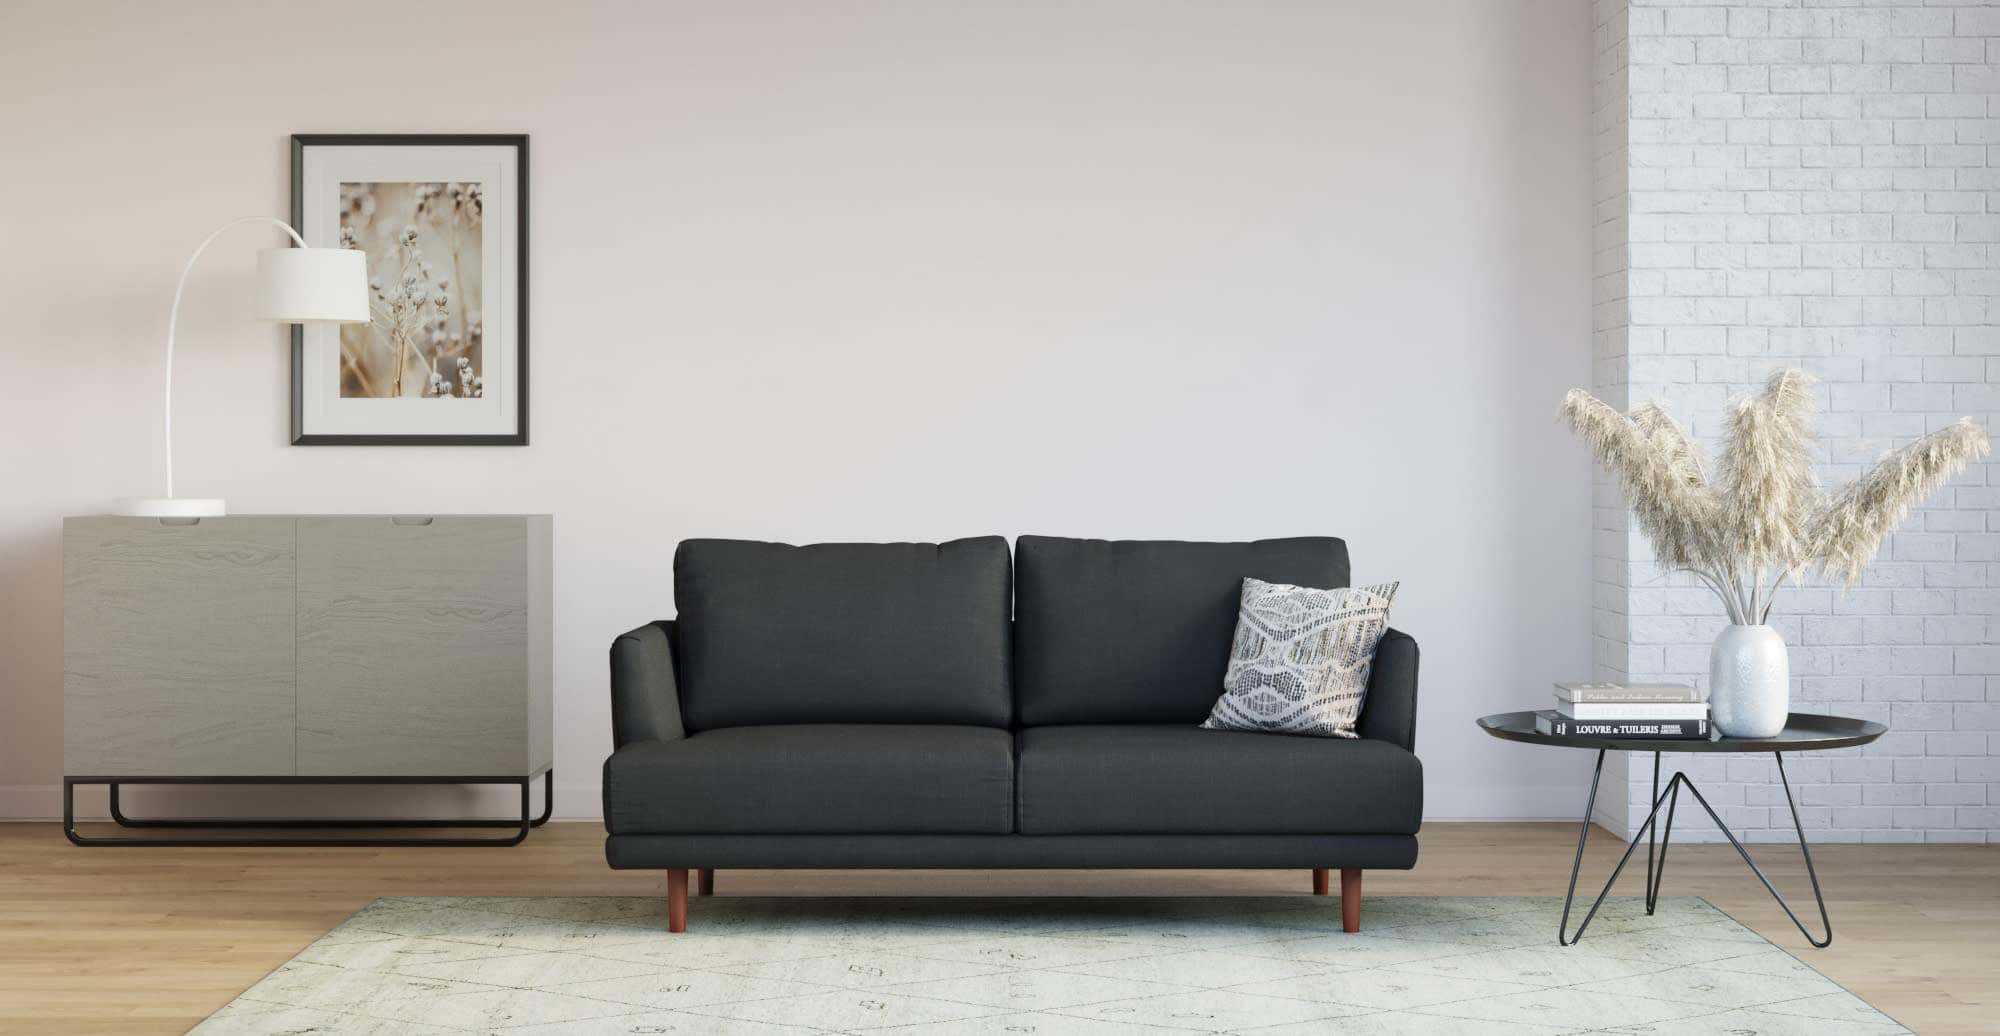 minimalist living room with black sofa and round black metal coffee table on thin legs